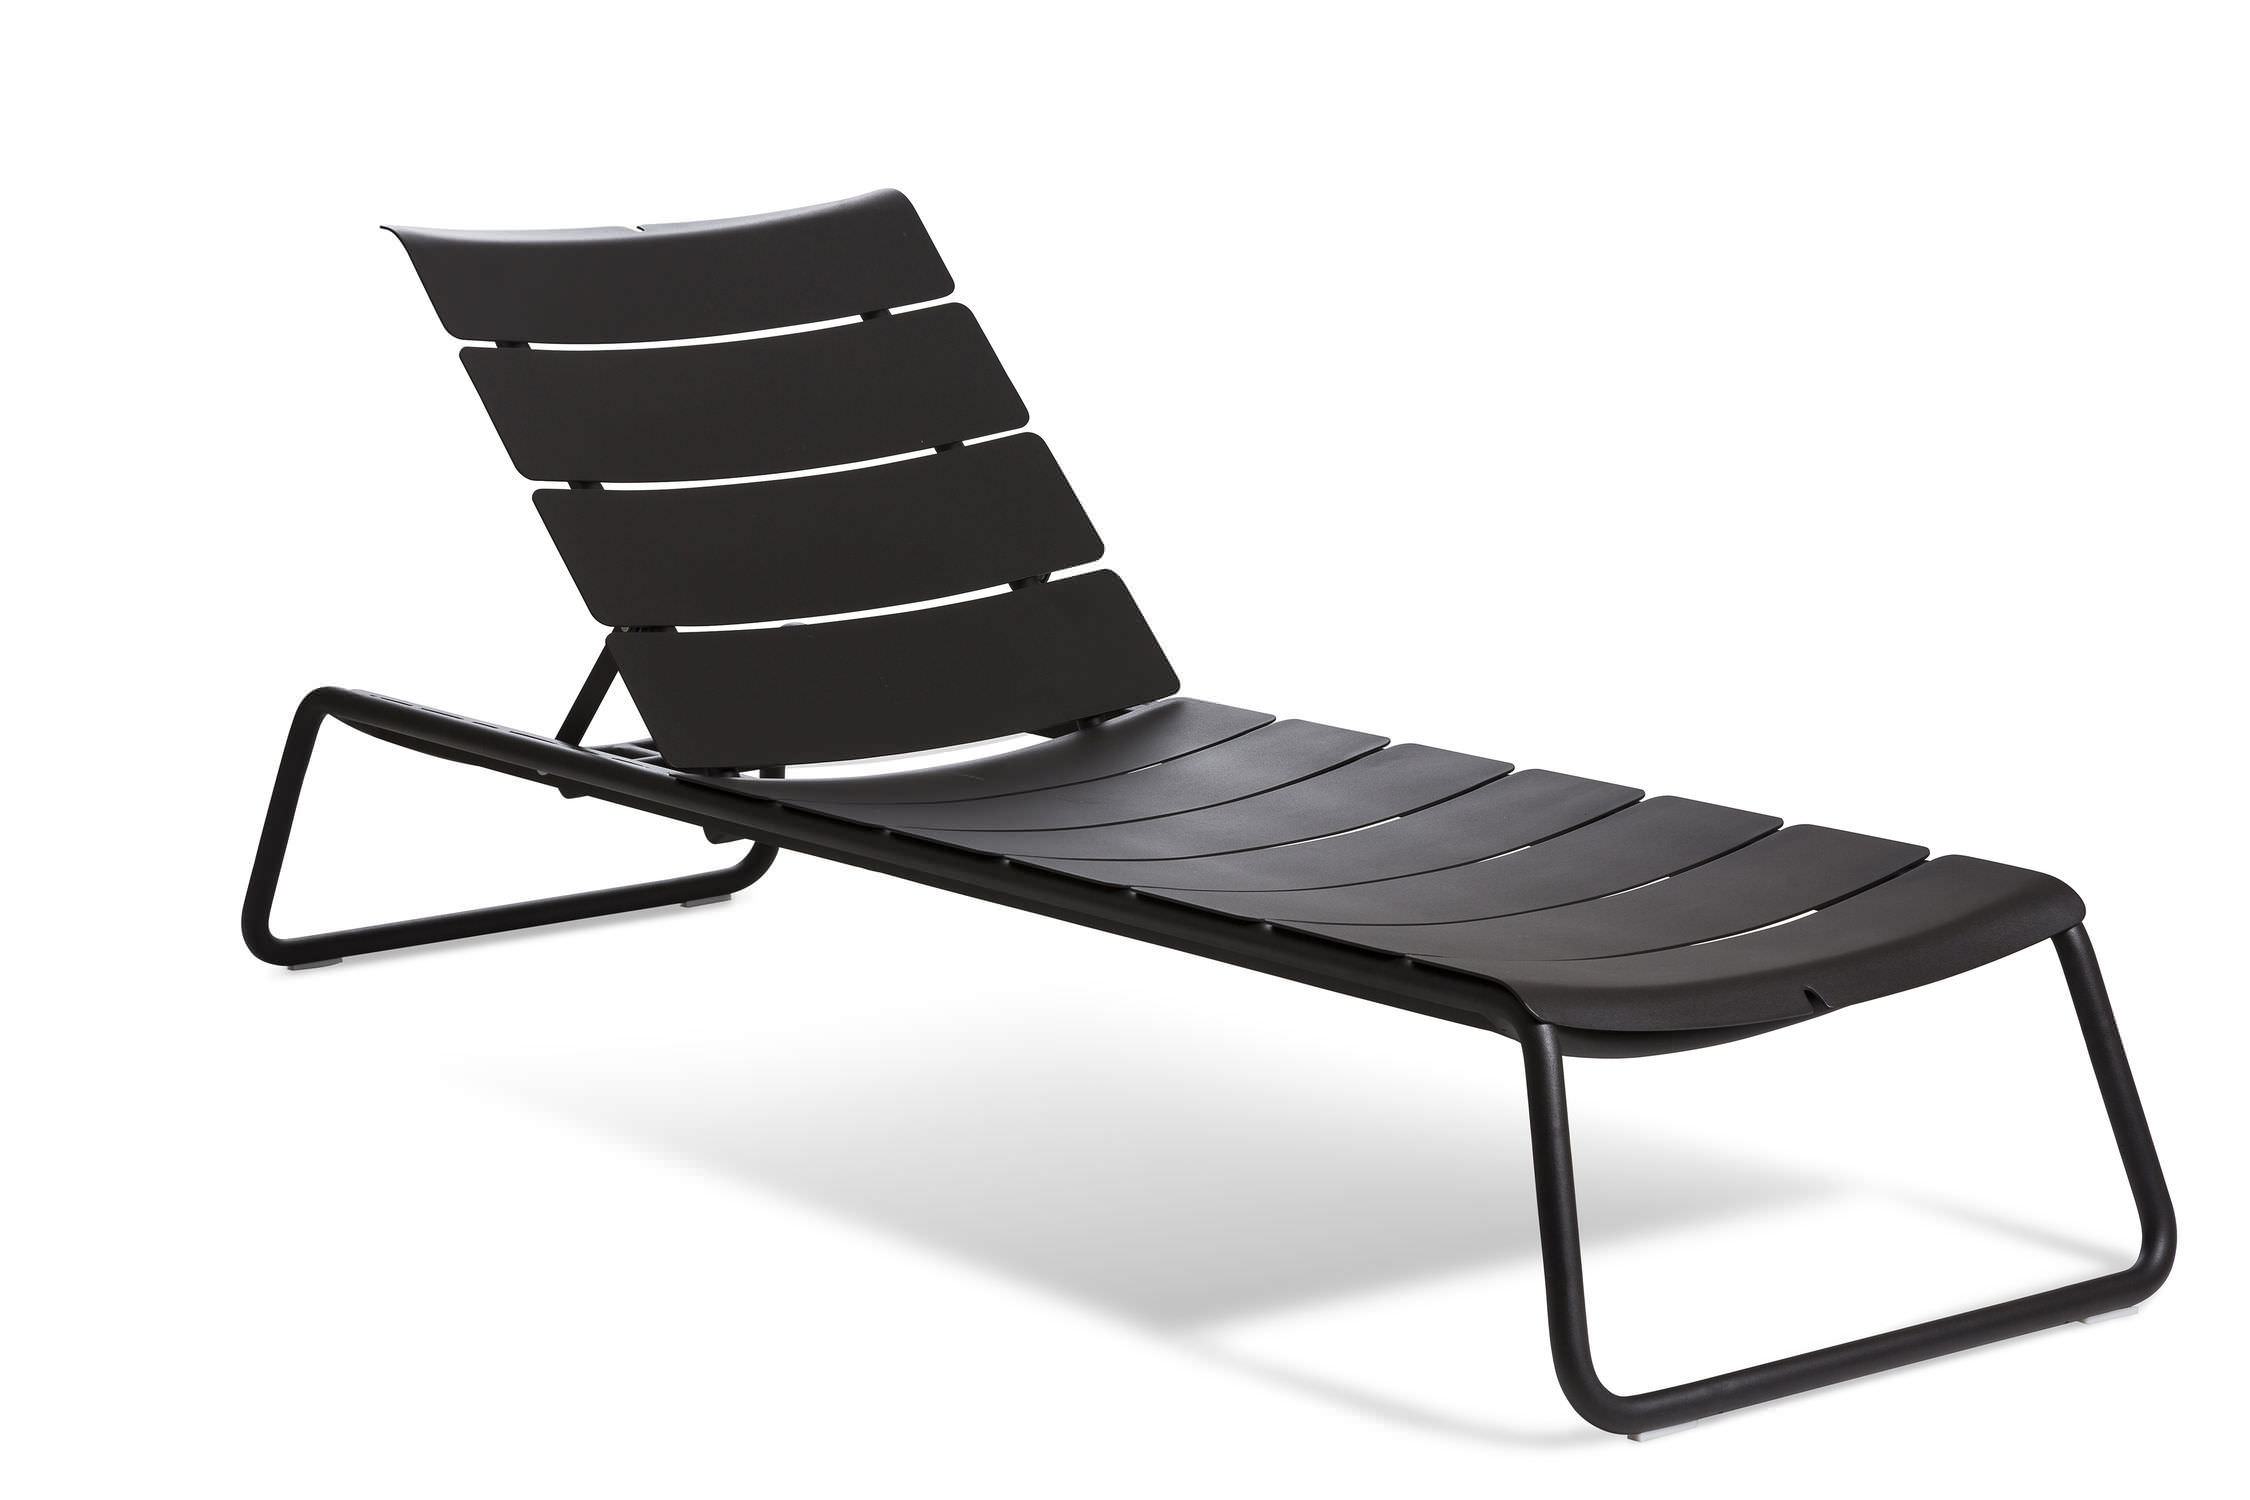 unique chaise longue solde id es de bain de soleil. Black Bedroom Furniture Sets. Home Design Ideas